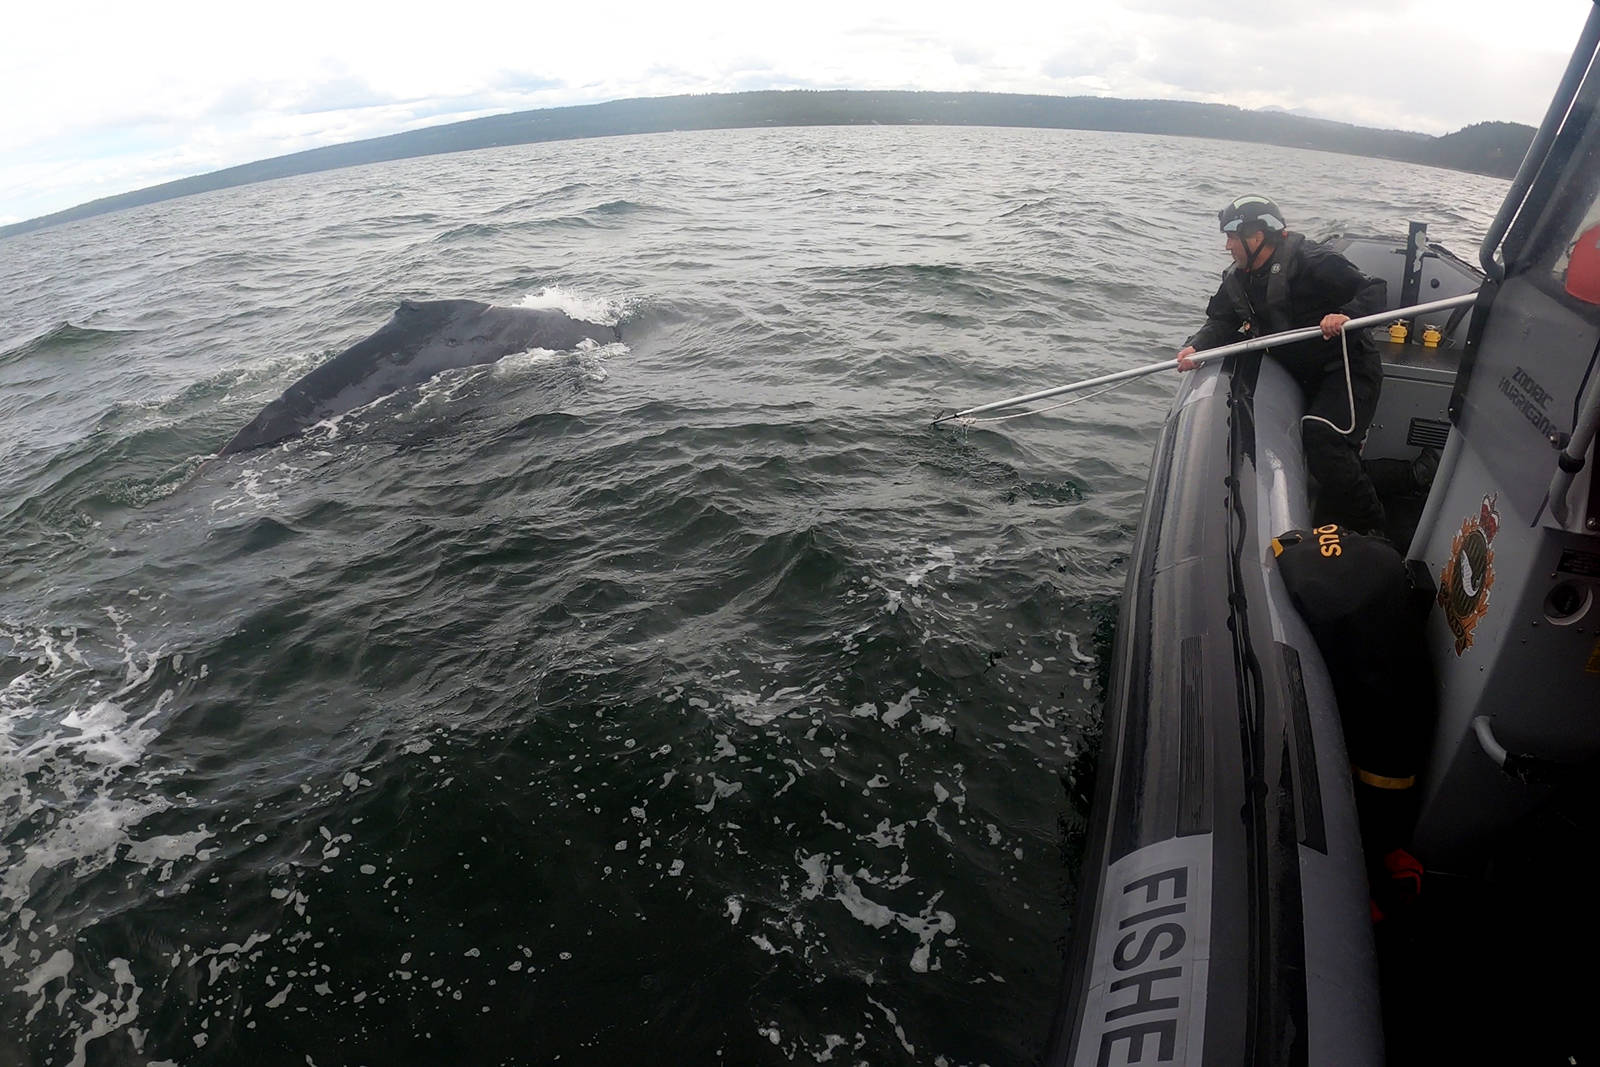 Members of the Department of Fisheries and Oceans' Marine Mammal Response Program rescued an adult humpback what that was entangled in commercial fishing gear in the waters off of Entrance Island on Thursday, June 10. (Photo courtesy Marine Mammal Response Program)